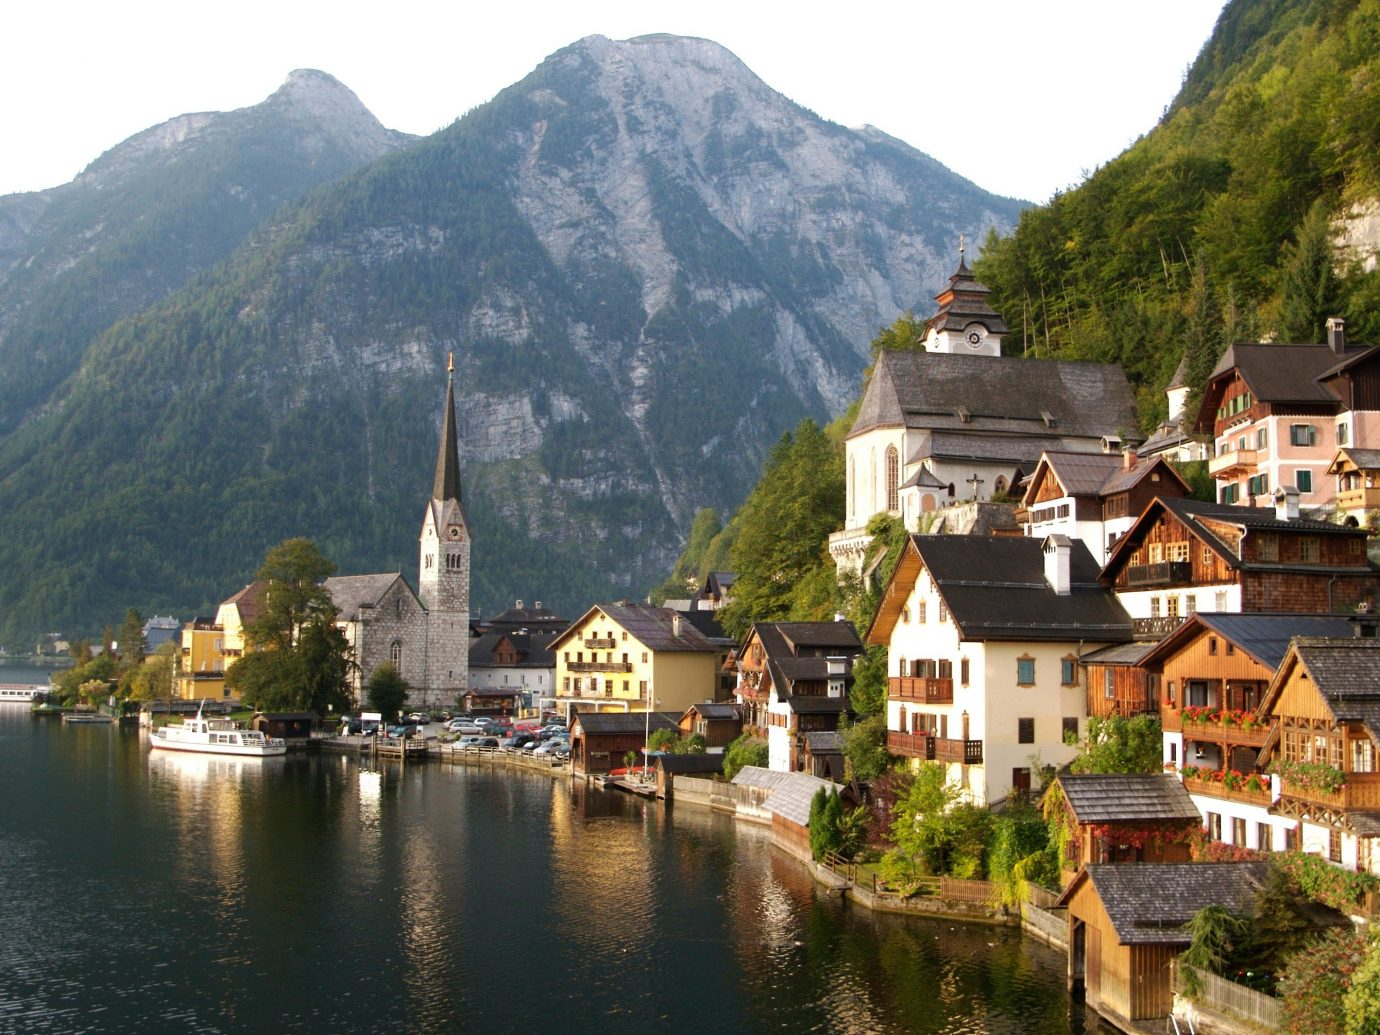 Secret Getaways Trip Ideas mountain outdoor water Nature Town geographical feature landform Lake historic site mountain range house Village fjord human settlement tourism River alps monastery valley surrounded hillside Island